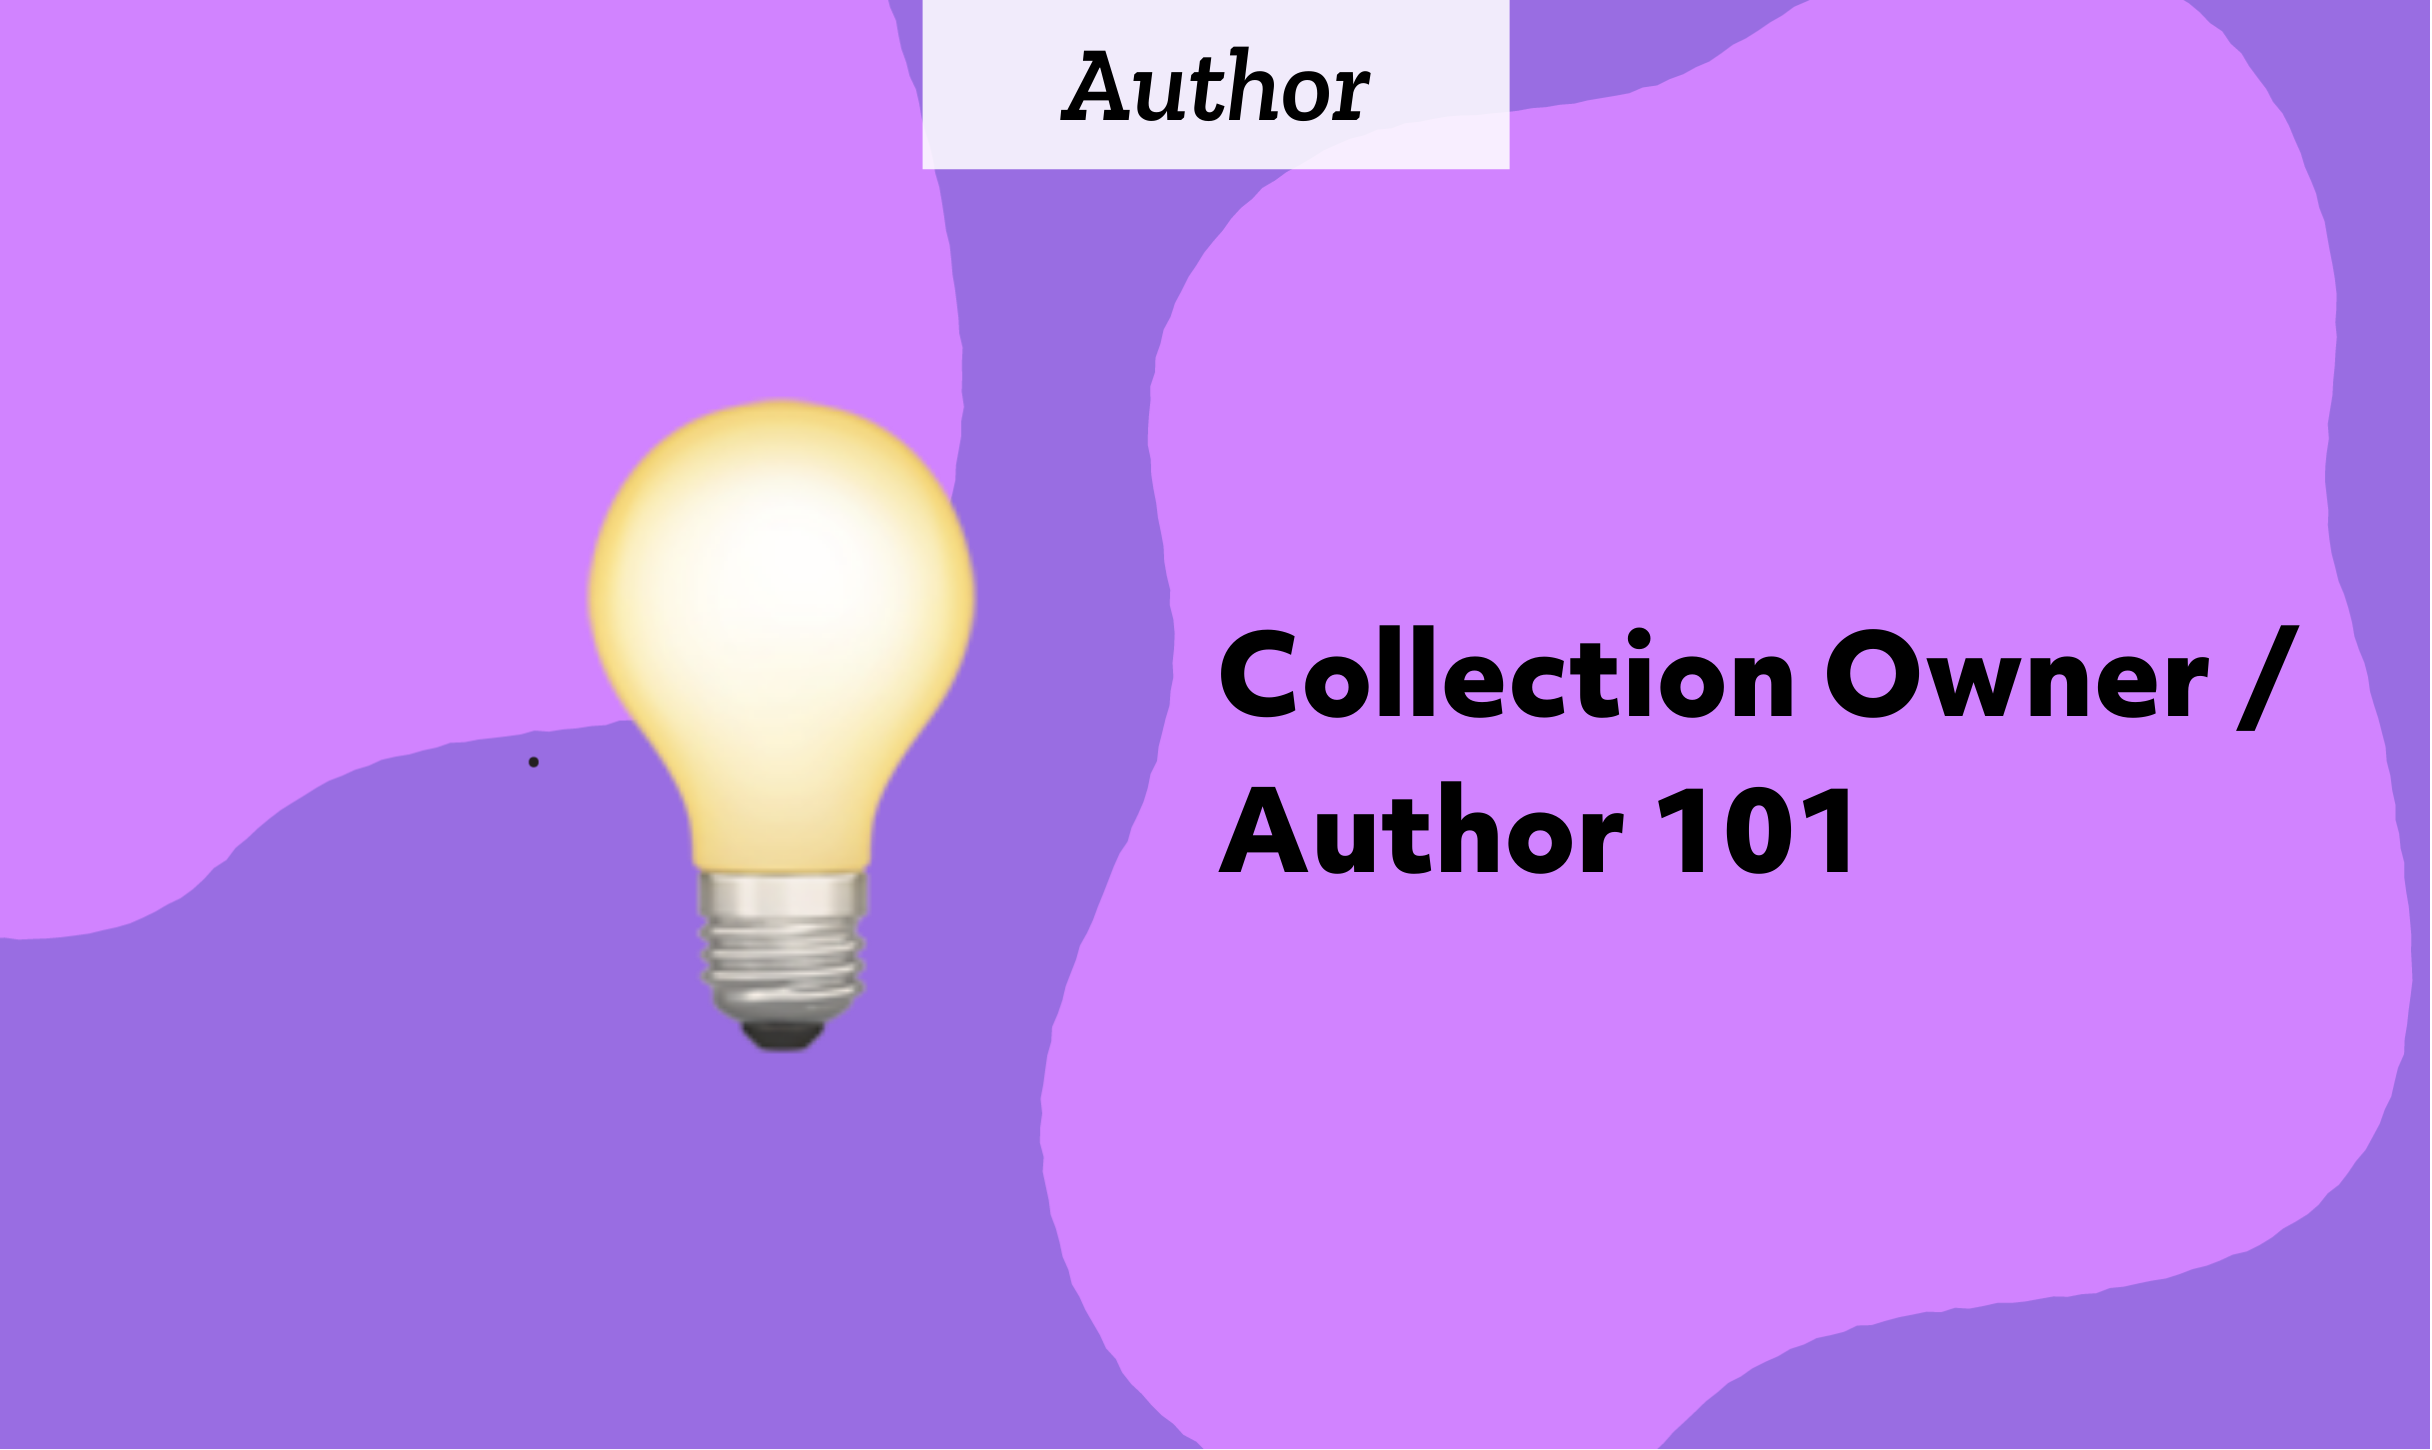 Collection Owner / Author 101